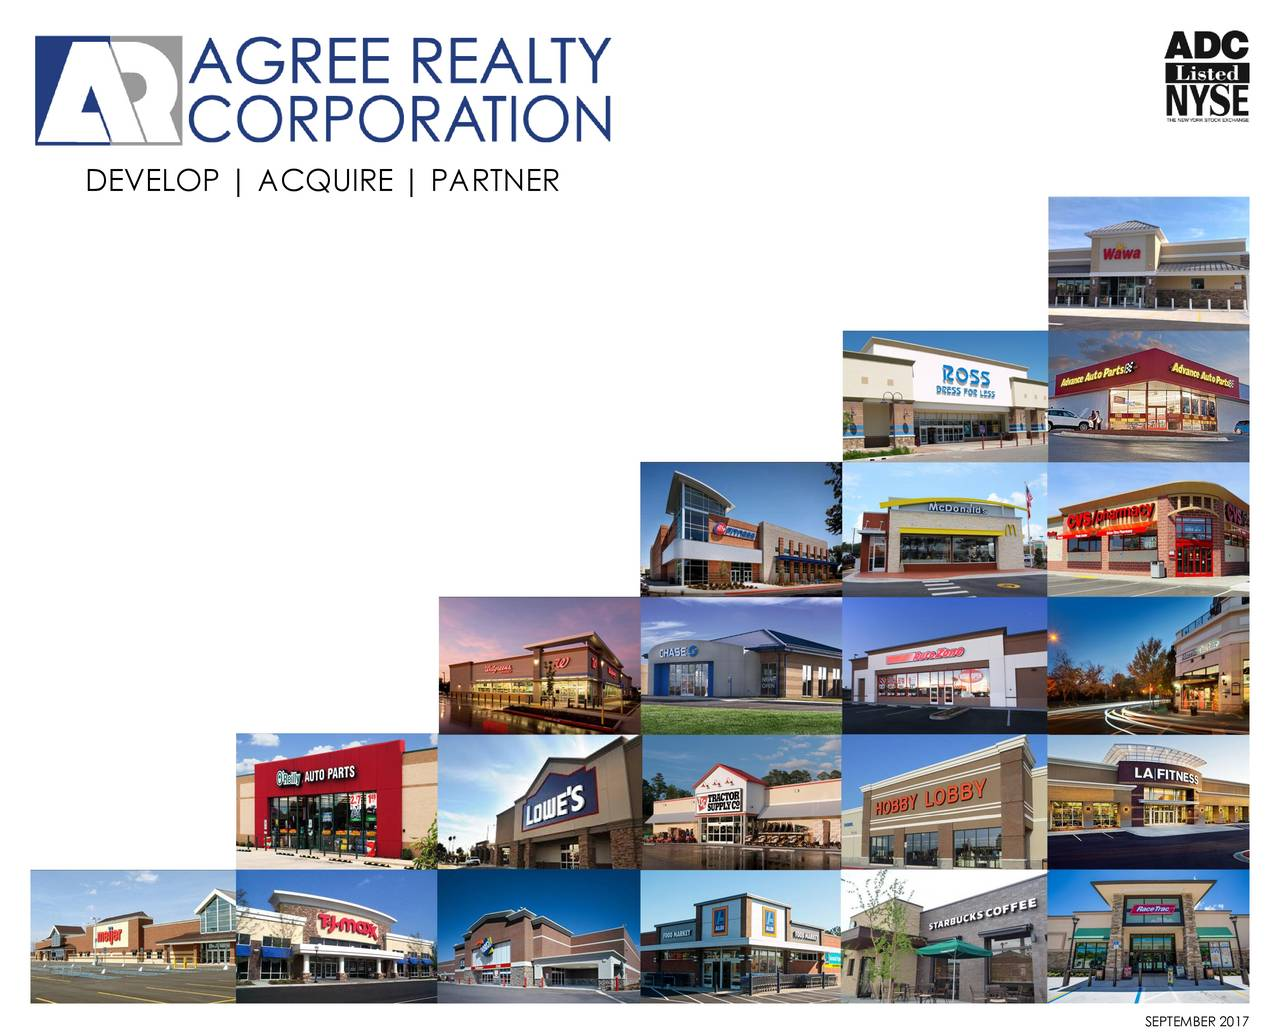 Agree realty corporation adc presents at wells fargo 6th annual agree realty corporation adc presents at wells fargo 6th annual net lease reit forum slideshow platinumwayz